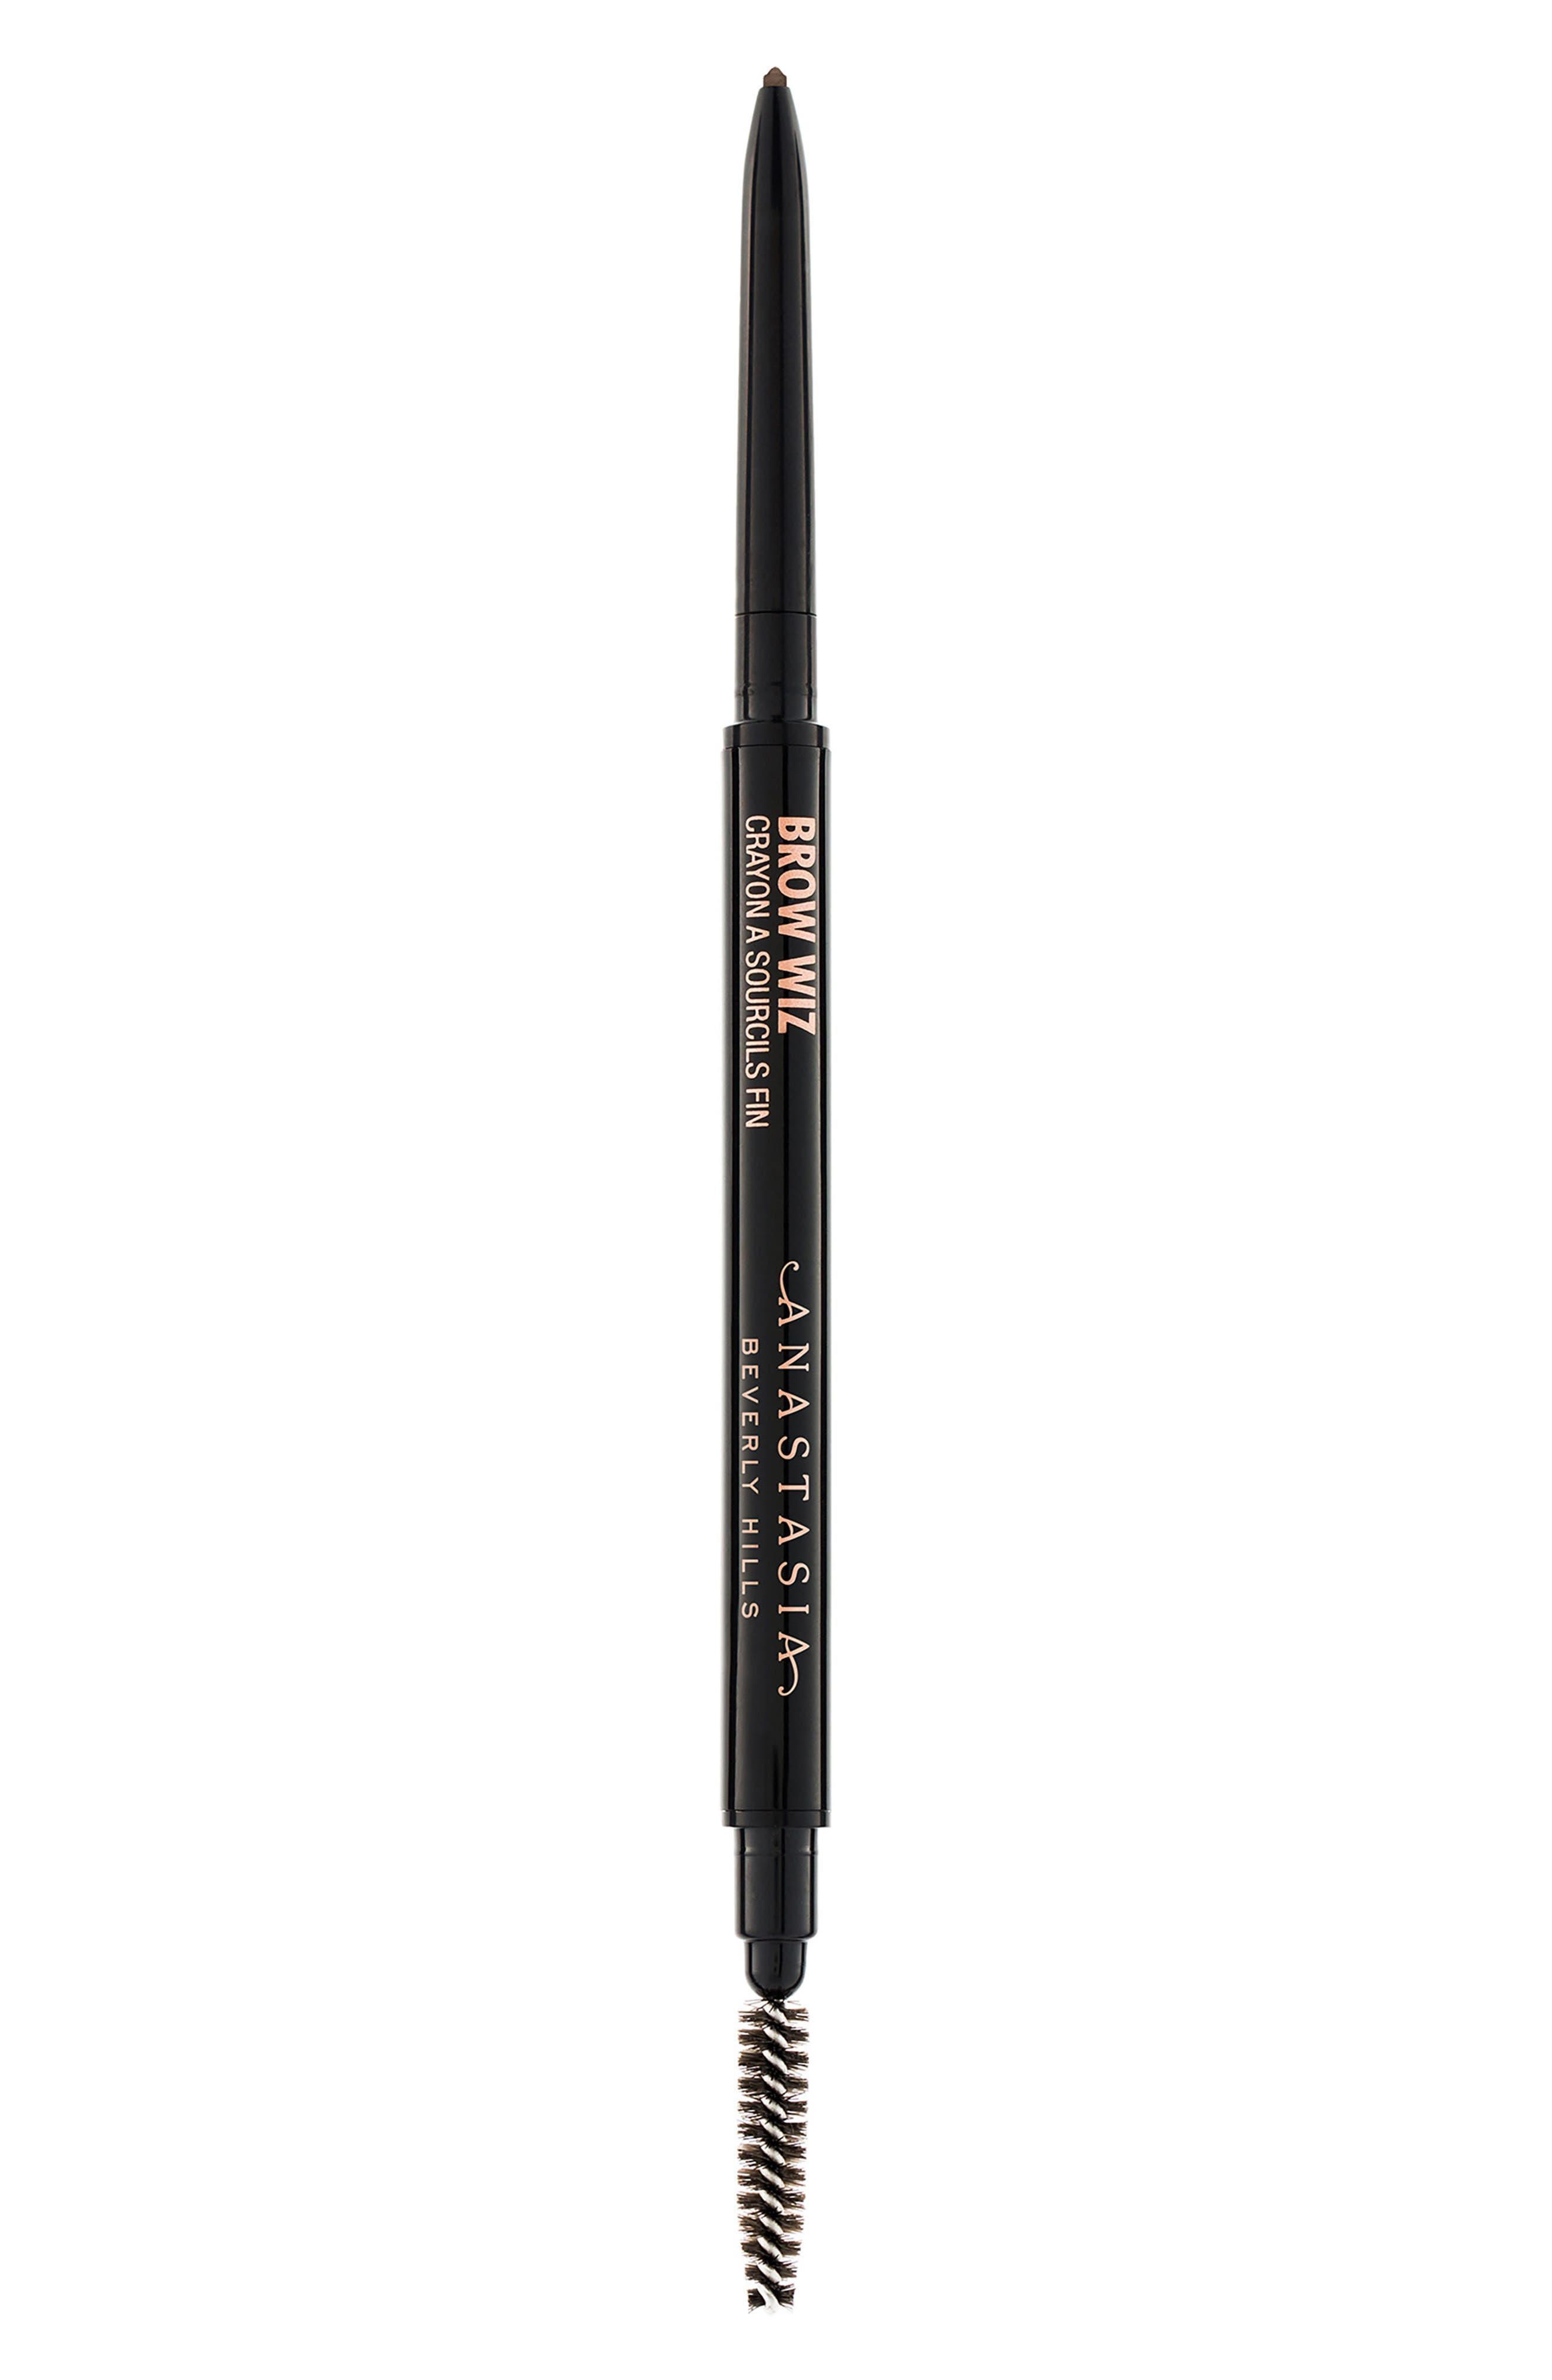 ANASTASIA BEVERLY HILLS Brow Wiz Mechanical Brow Pencil, Main, color, TAUPE (ASH BLONDE)